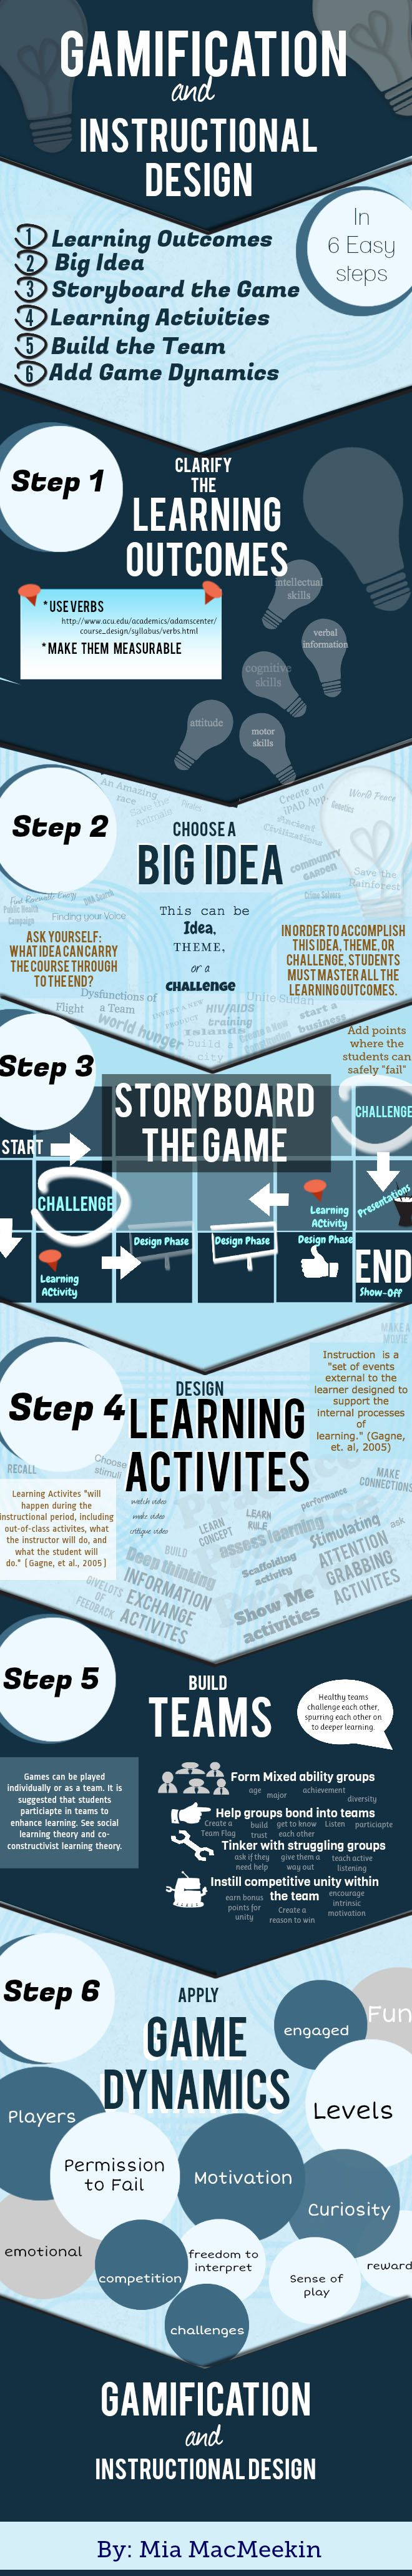 gamification-instructional-design